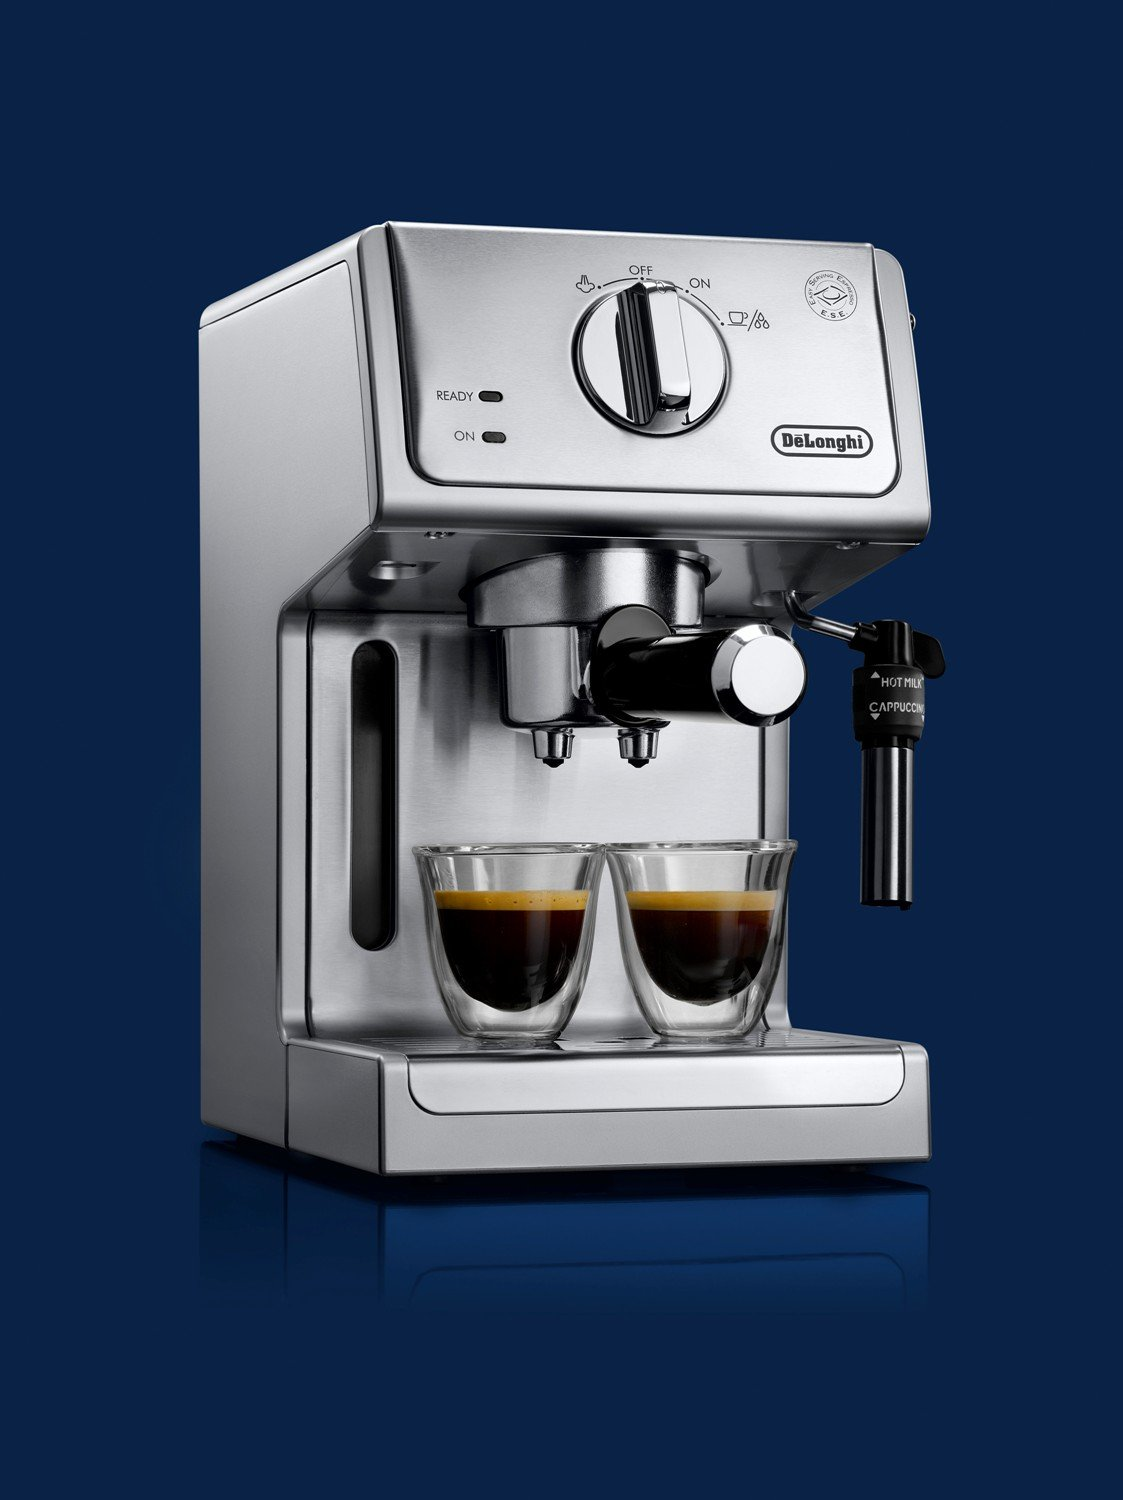 De'Longhi ECP3630 15 Bar Pump Espresso and Cappuccino Machine, Stainless Steel